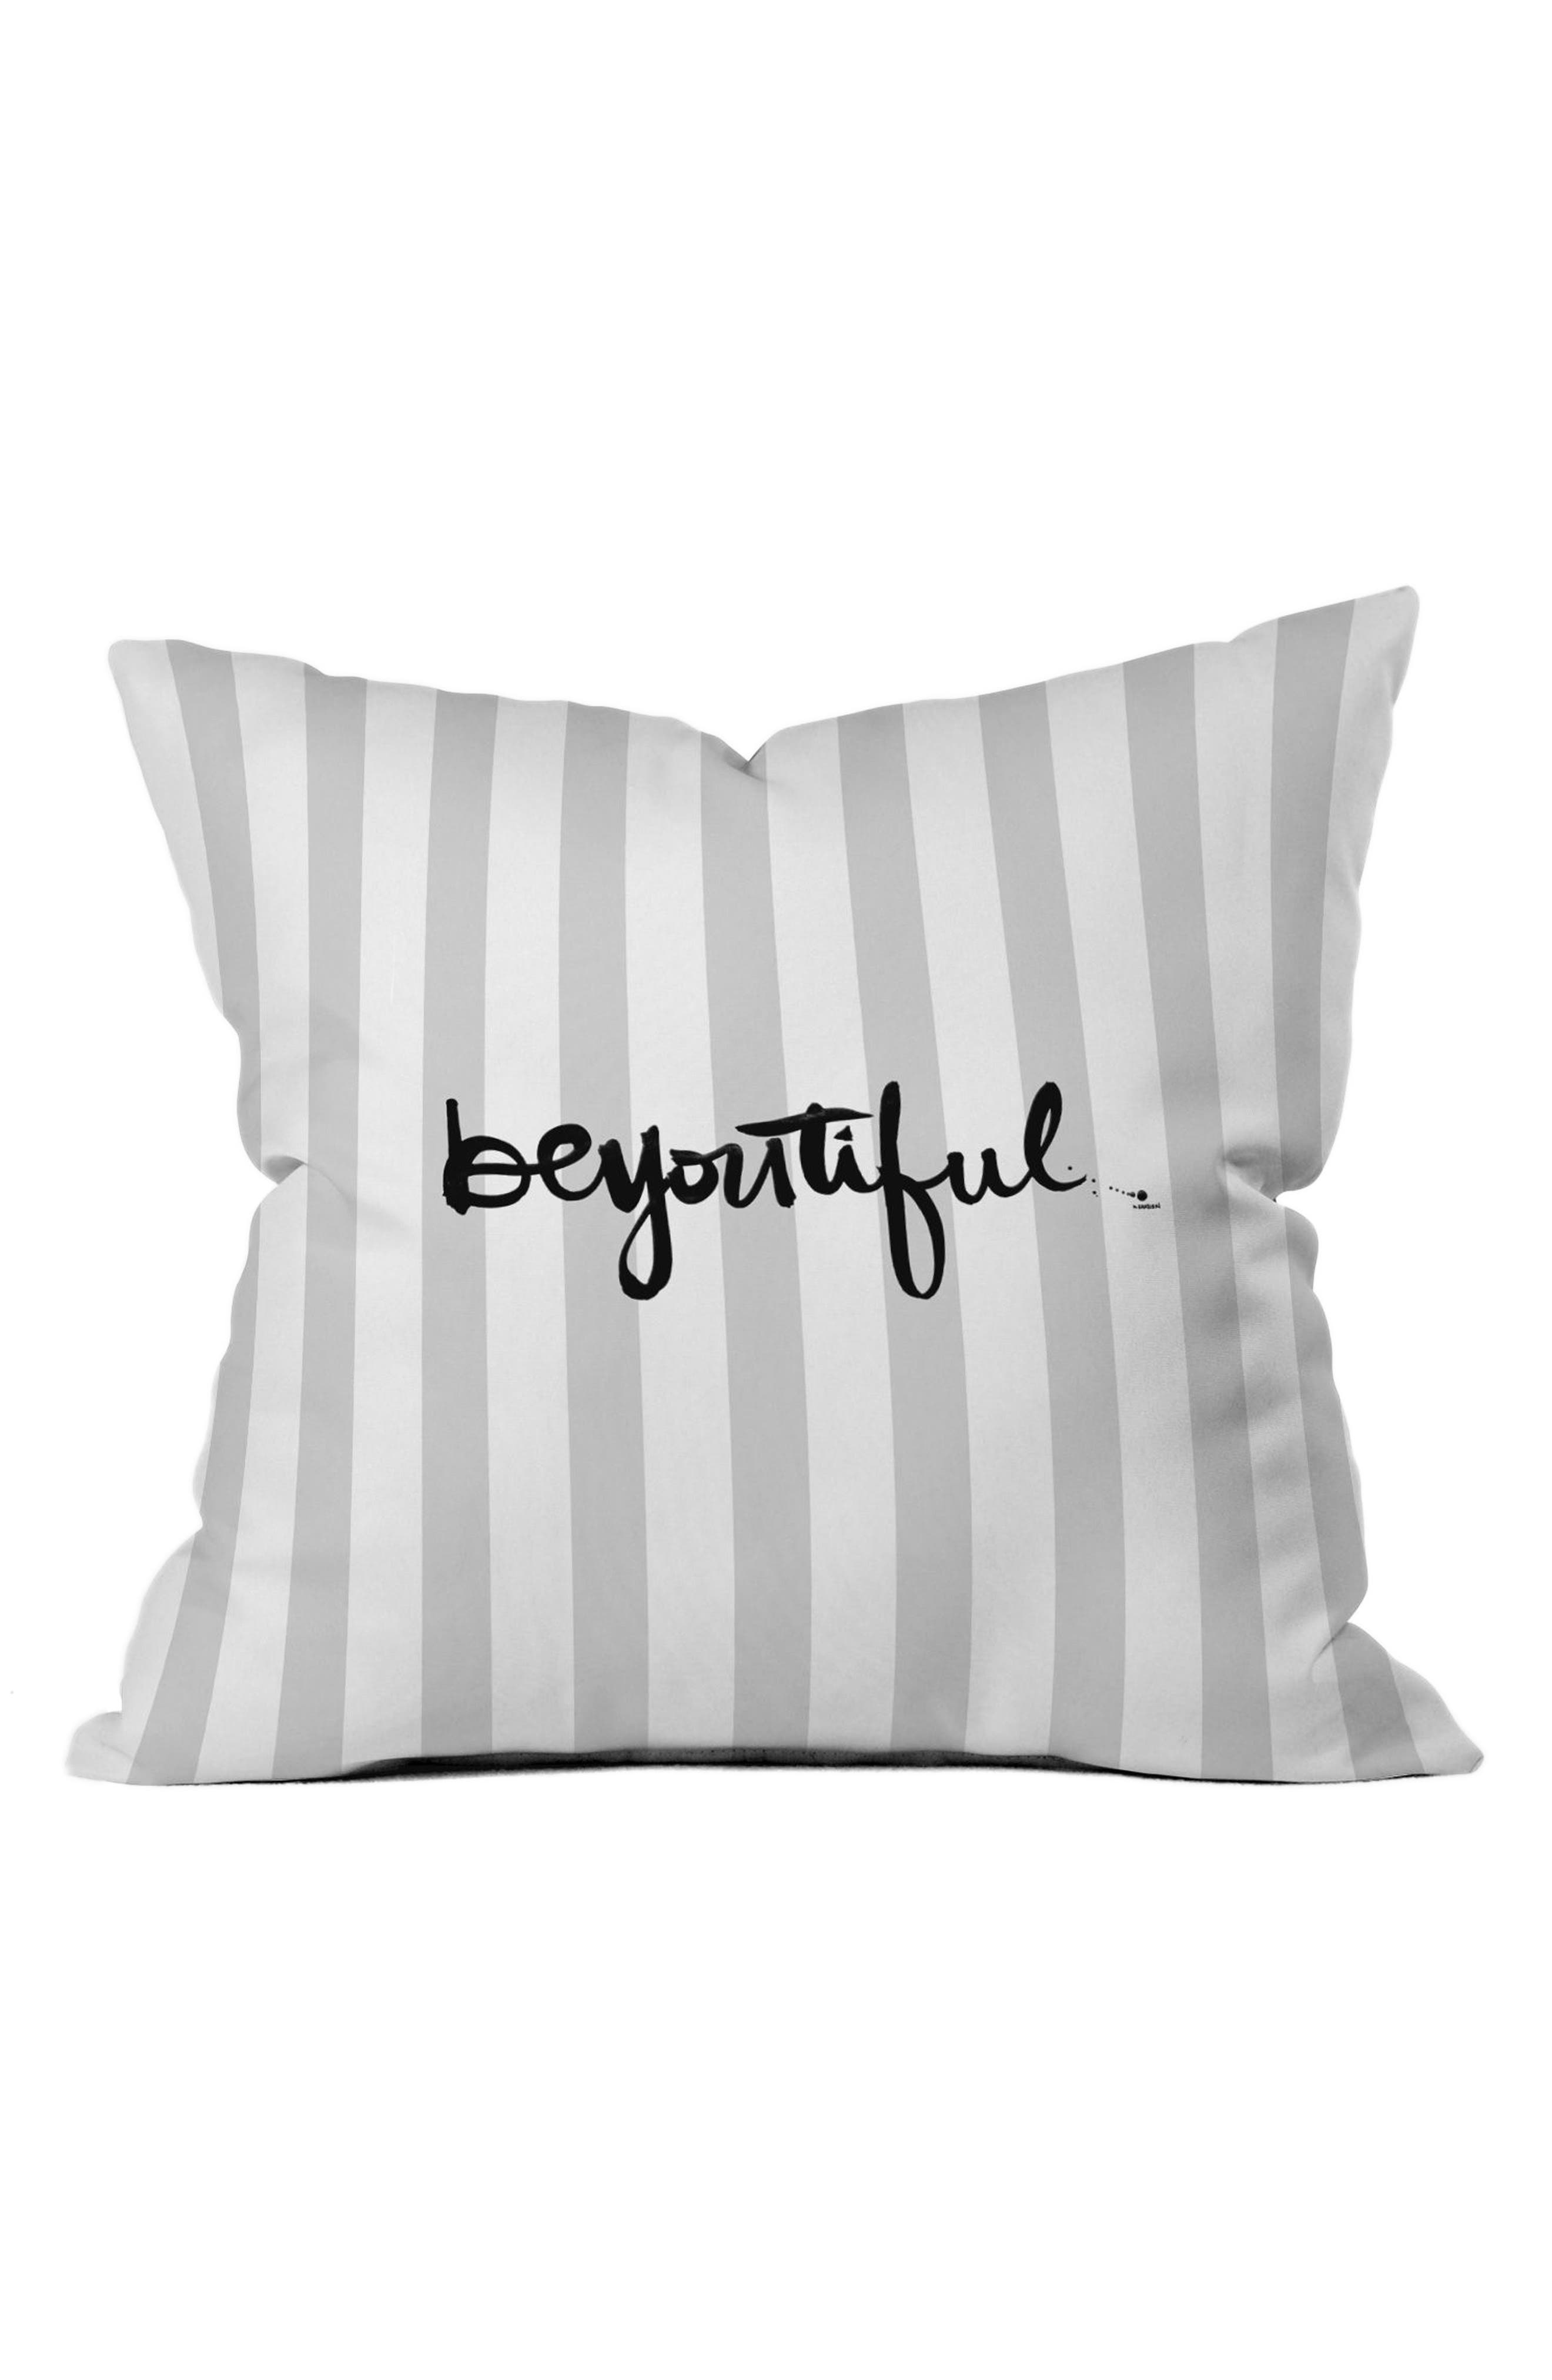 Main Image - Deny Designs Be-you-tiful Pillow